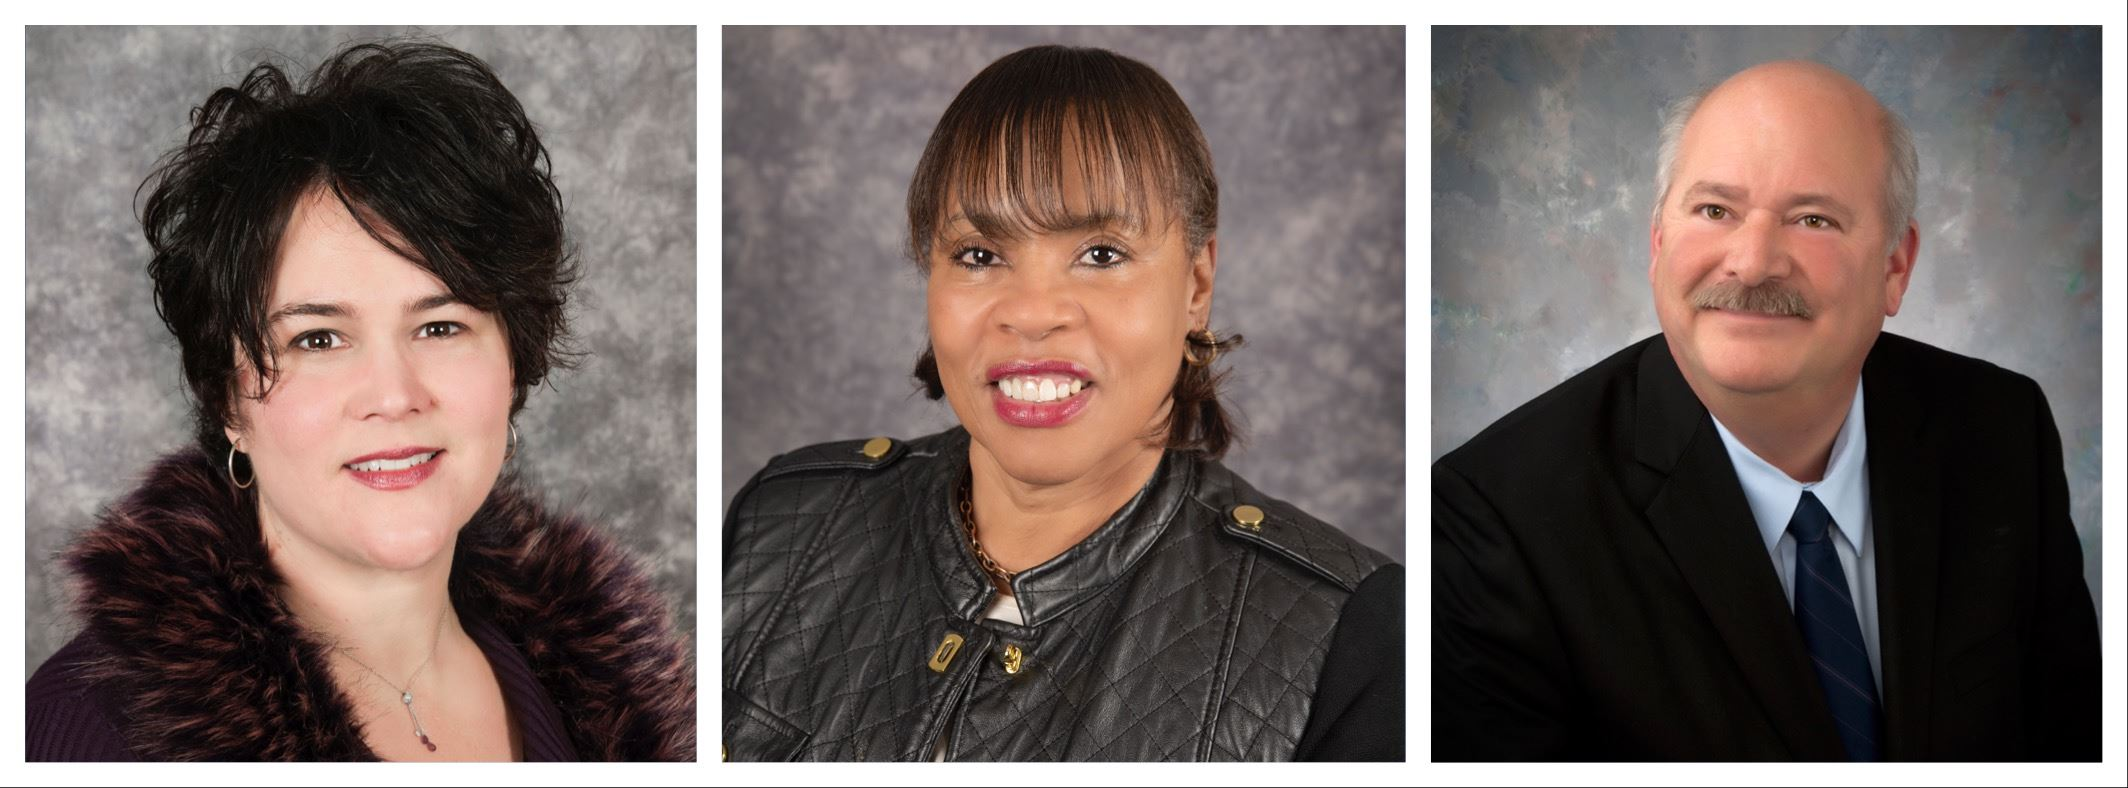 : Photos of Chairperson LaLonde, Vice Chairperson Quarles and Commissioner Fowkes are attached.